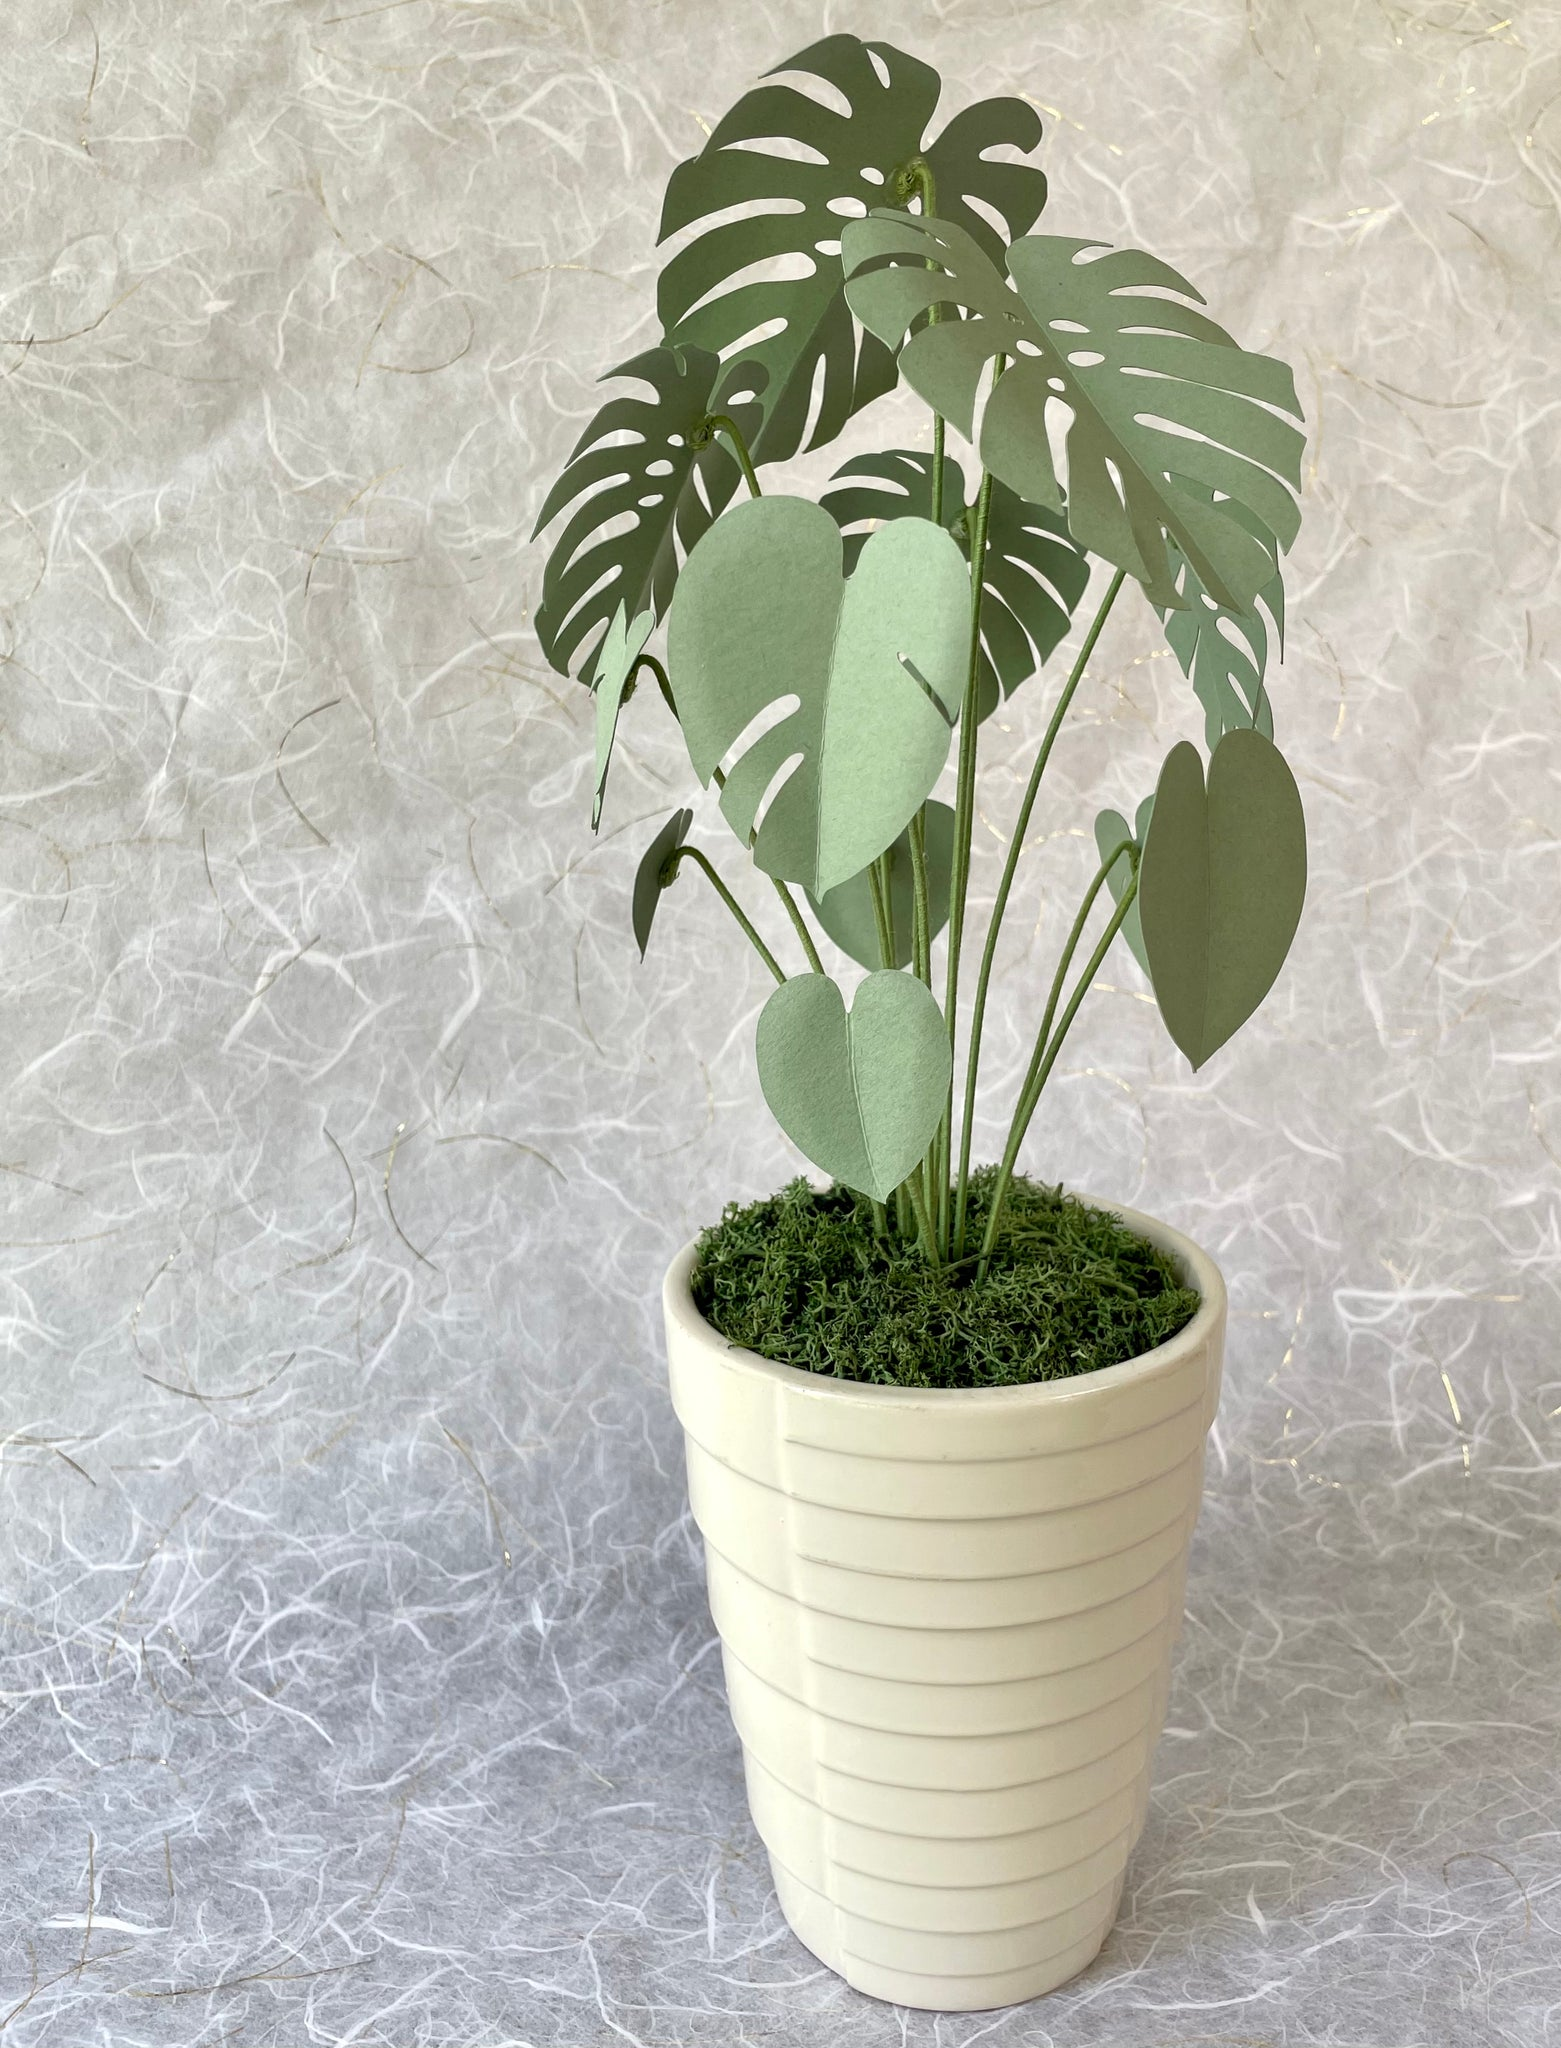 Paper Monstera House Plant in Vintage Geometric Planter